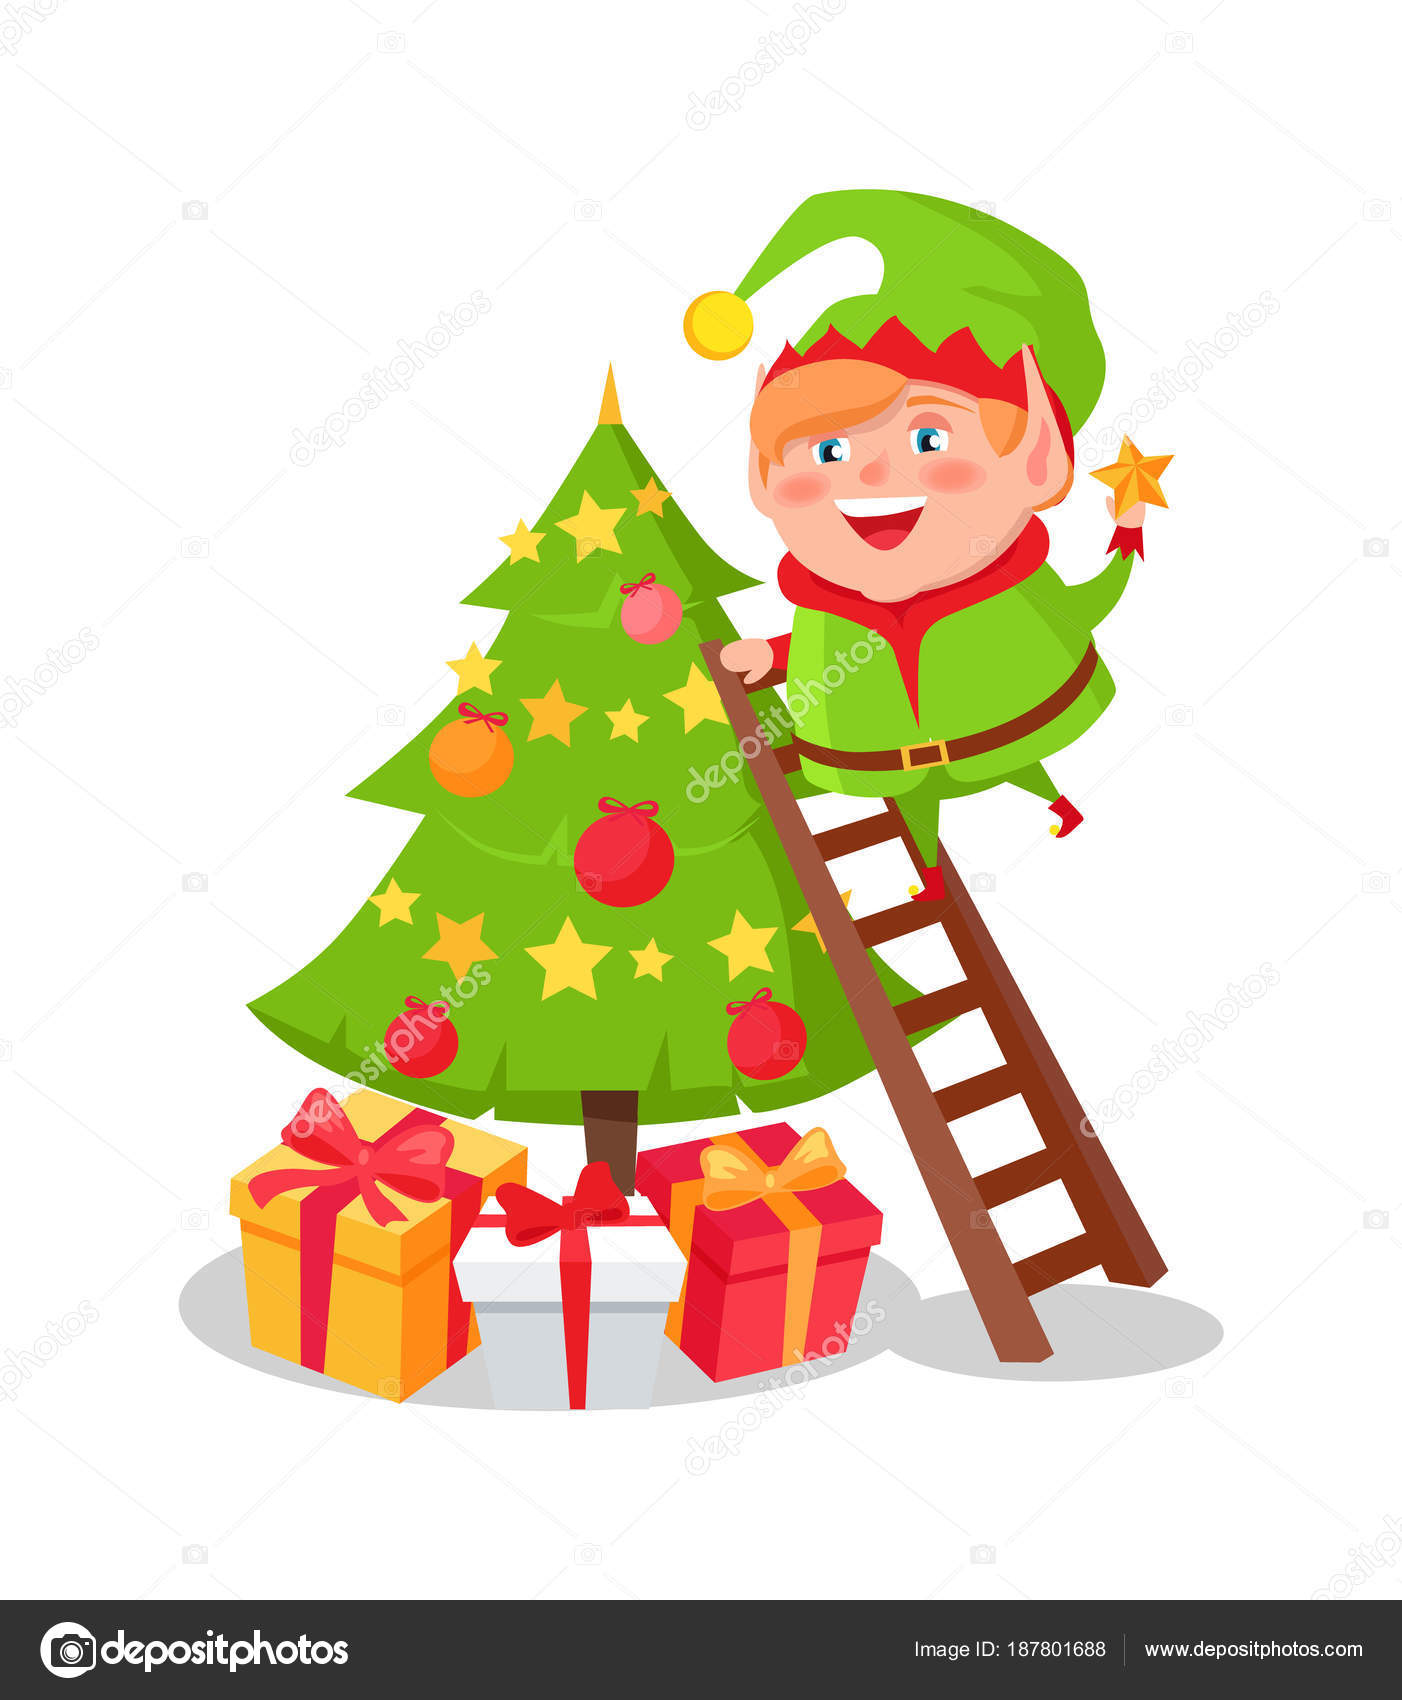 c5311d02 Elf cartoon character decorate Christmas tree putting star on top standing  on ladder, many gift boxes and New year symbol vector illustration postcard  ...